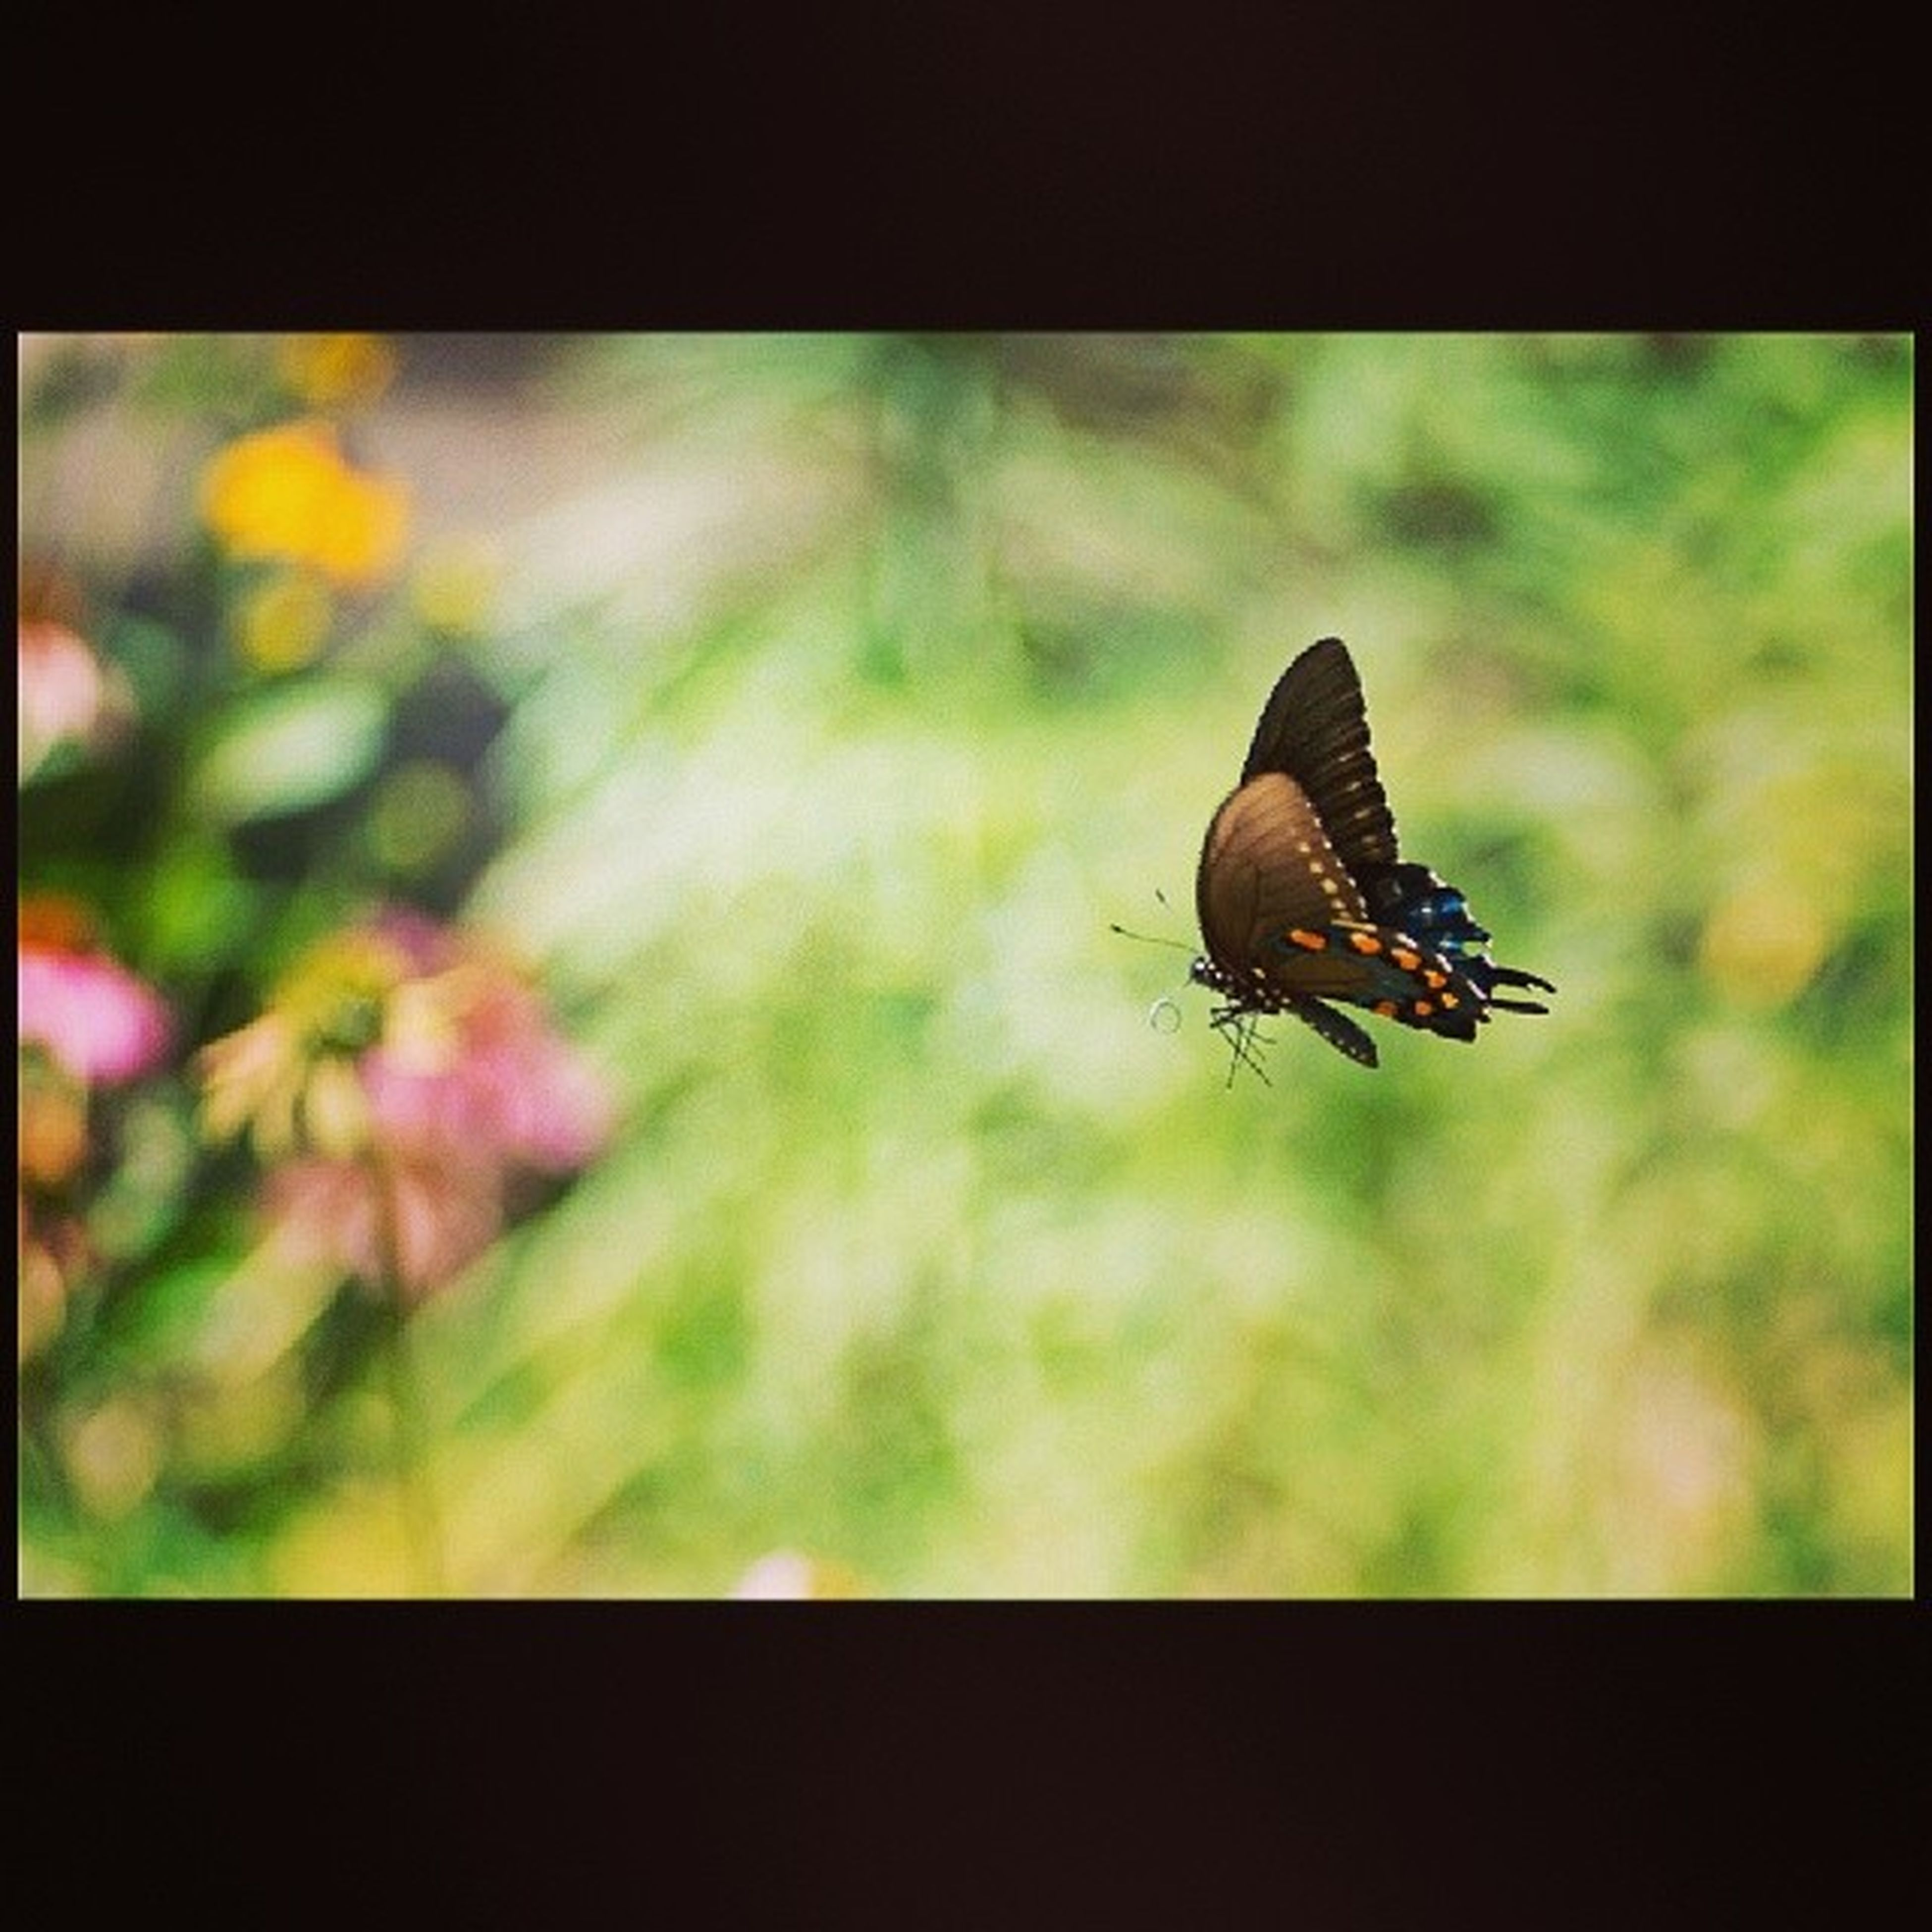 Lone little butterfly in motion.. Lonebutterfly Instamotion Butterflies Beautiful Bugs Naturephotography Instanature Instawesome TBT  Funtimes Science Warmweather Spring Time Timeforflowerstobloom Alittletooearlyforspring in YYC Wishfulthinking Snowstillmeltinginyyc